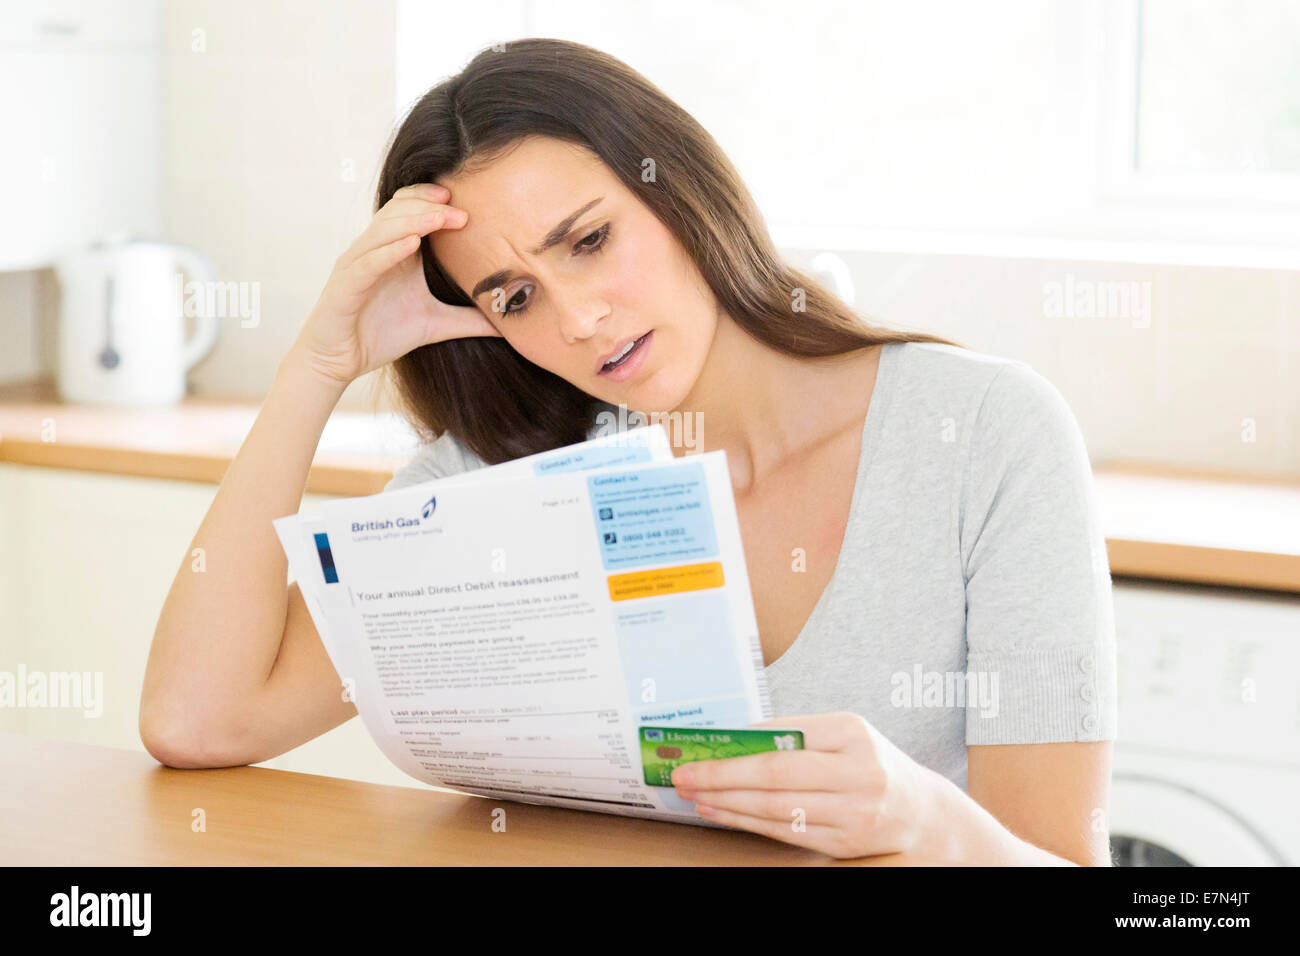 woman worried about her gas utility bill / statement - Stock Image